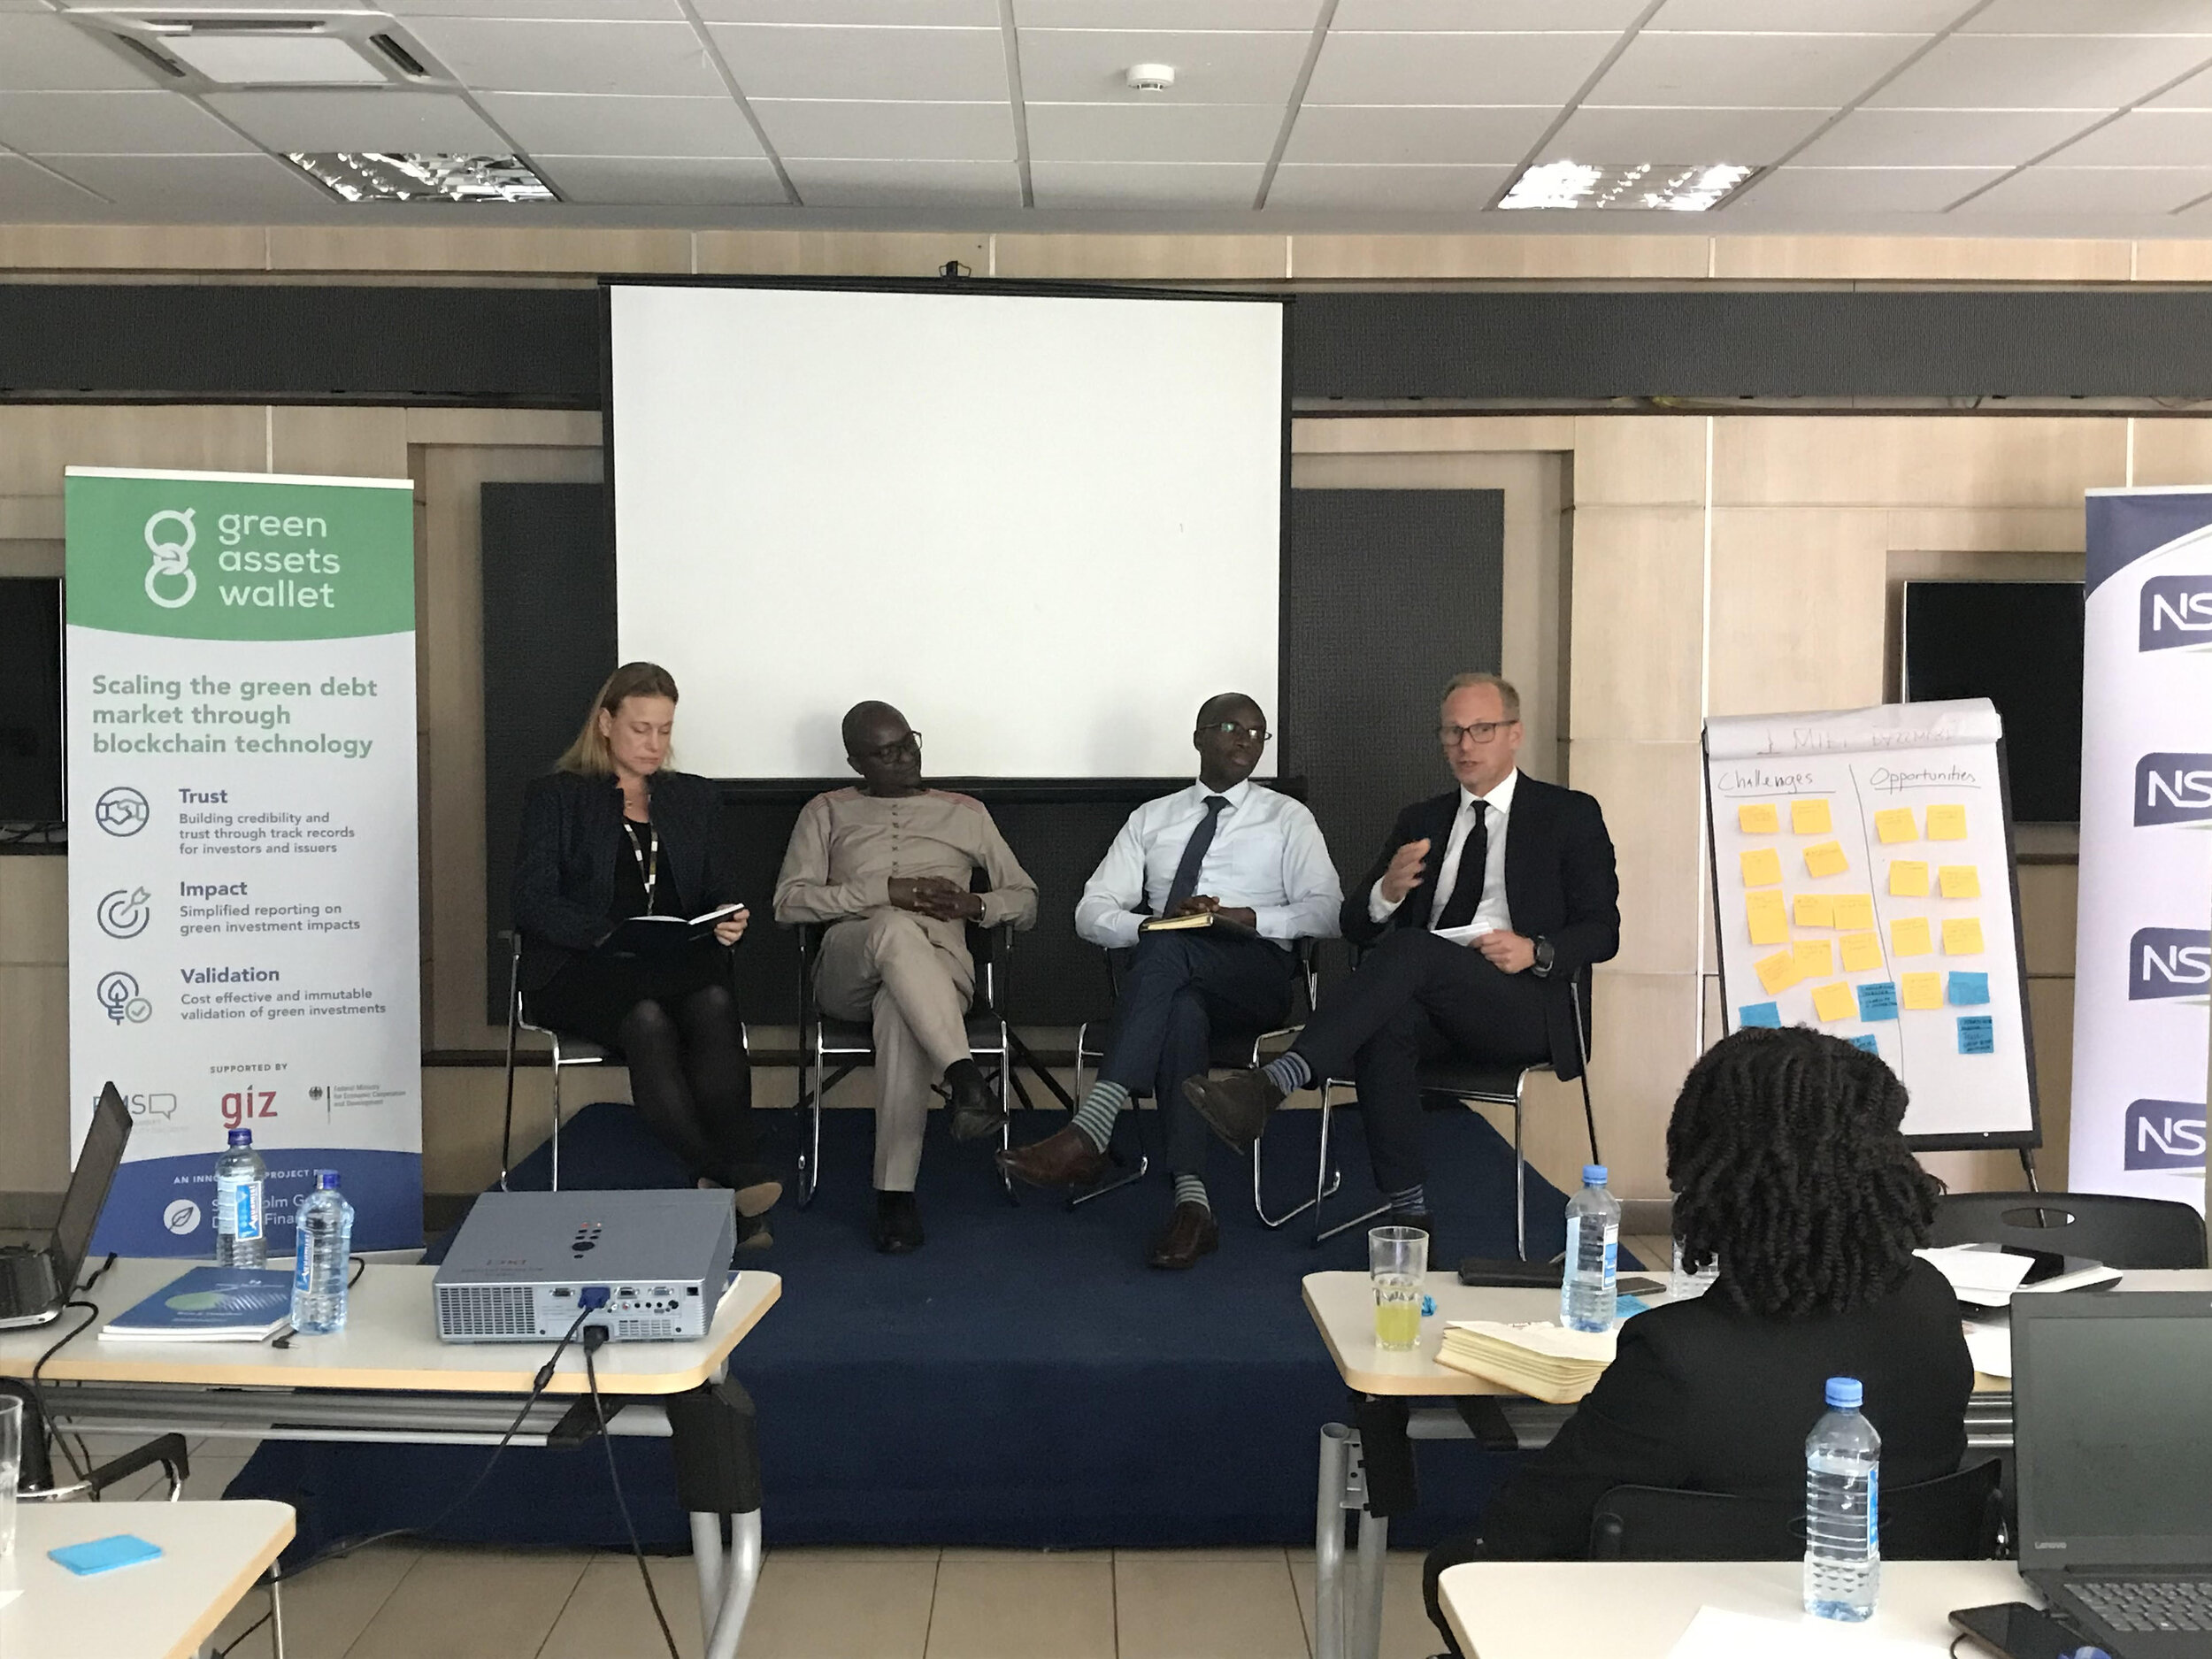 Harald Francke Lund moderating a panel discussion on the current state of the green bond market with Cecilia Murai, Victor Nkiiri, and Hillary Cheruiyot Biwott